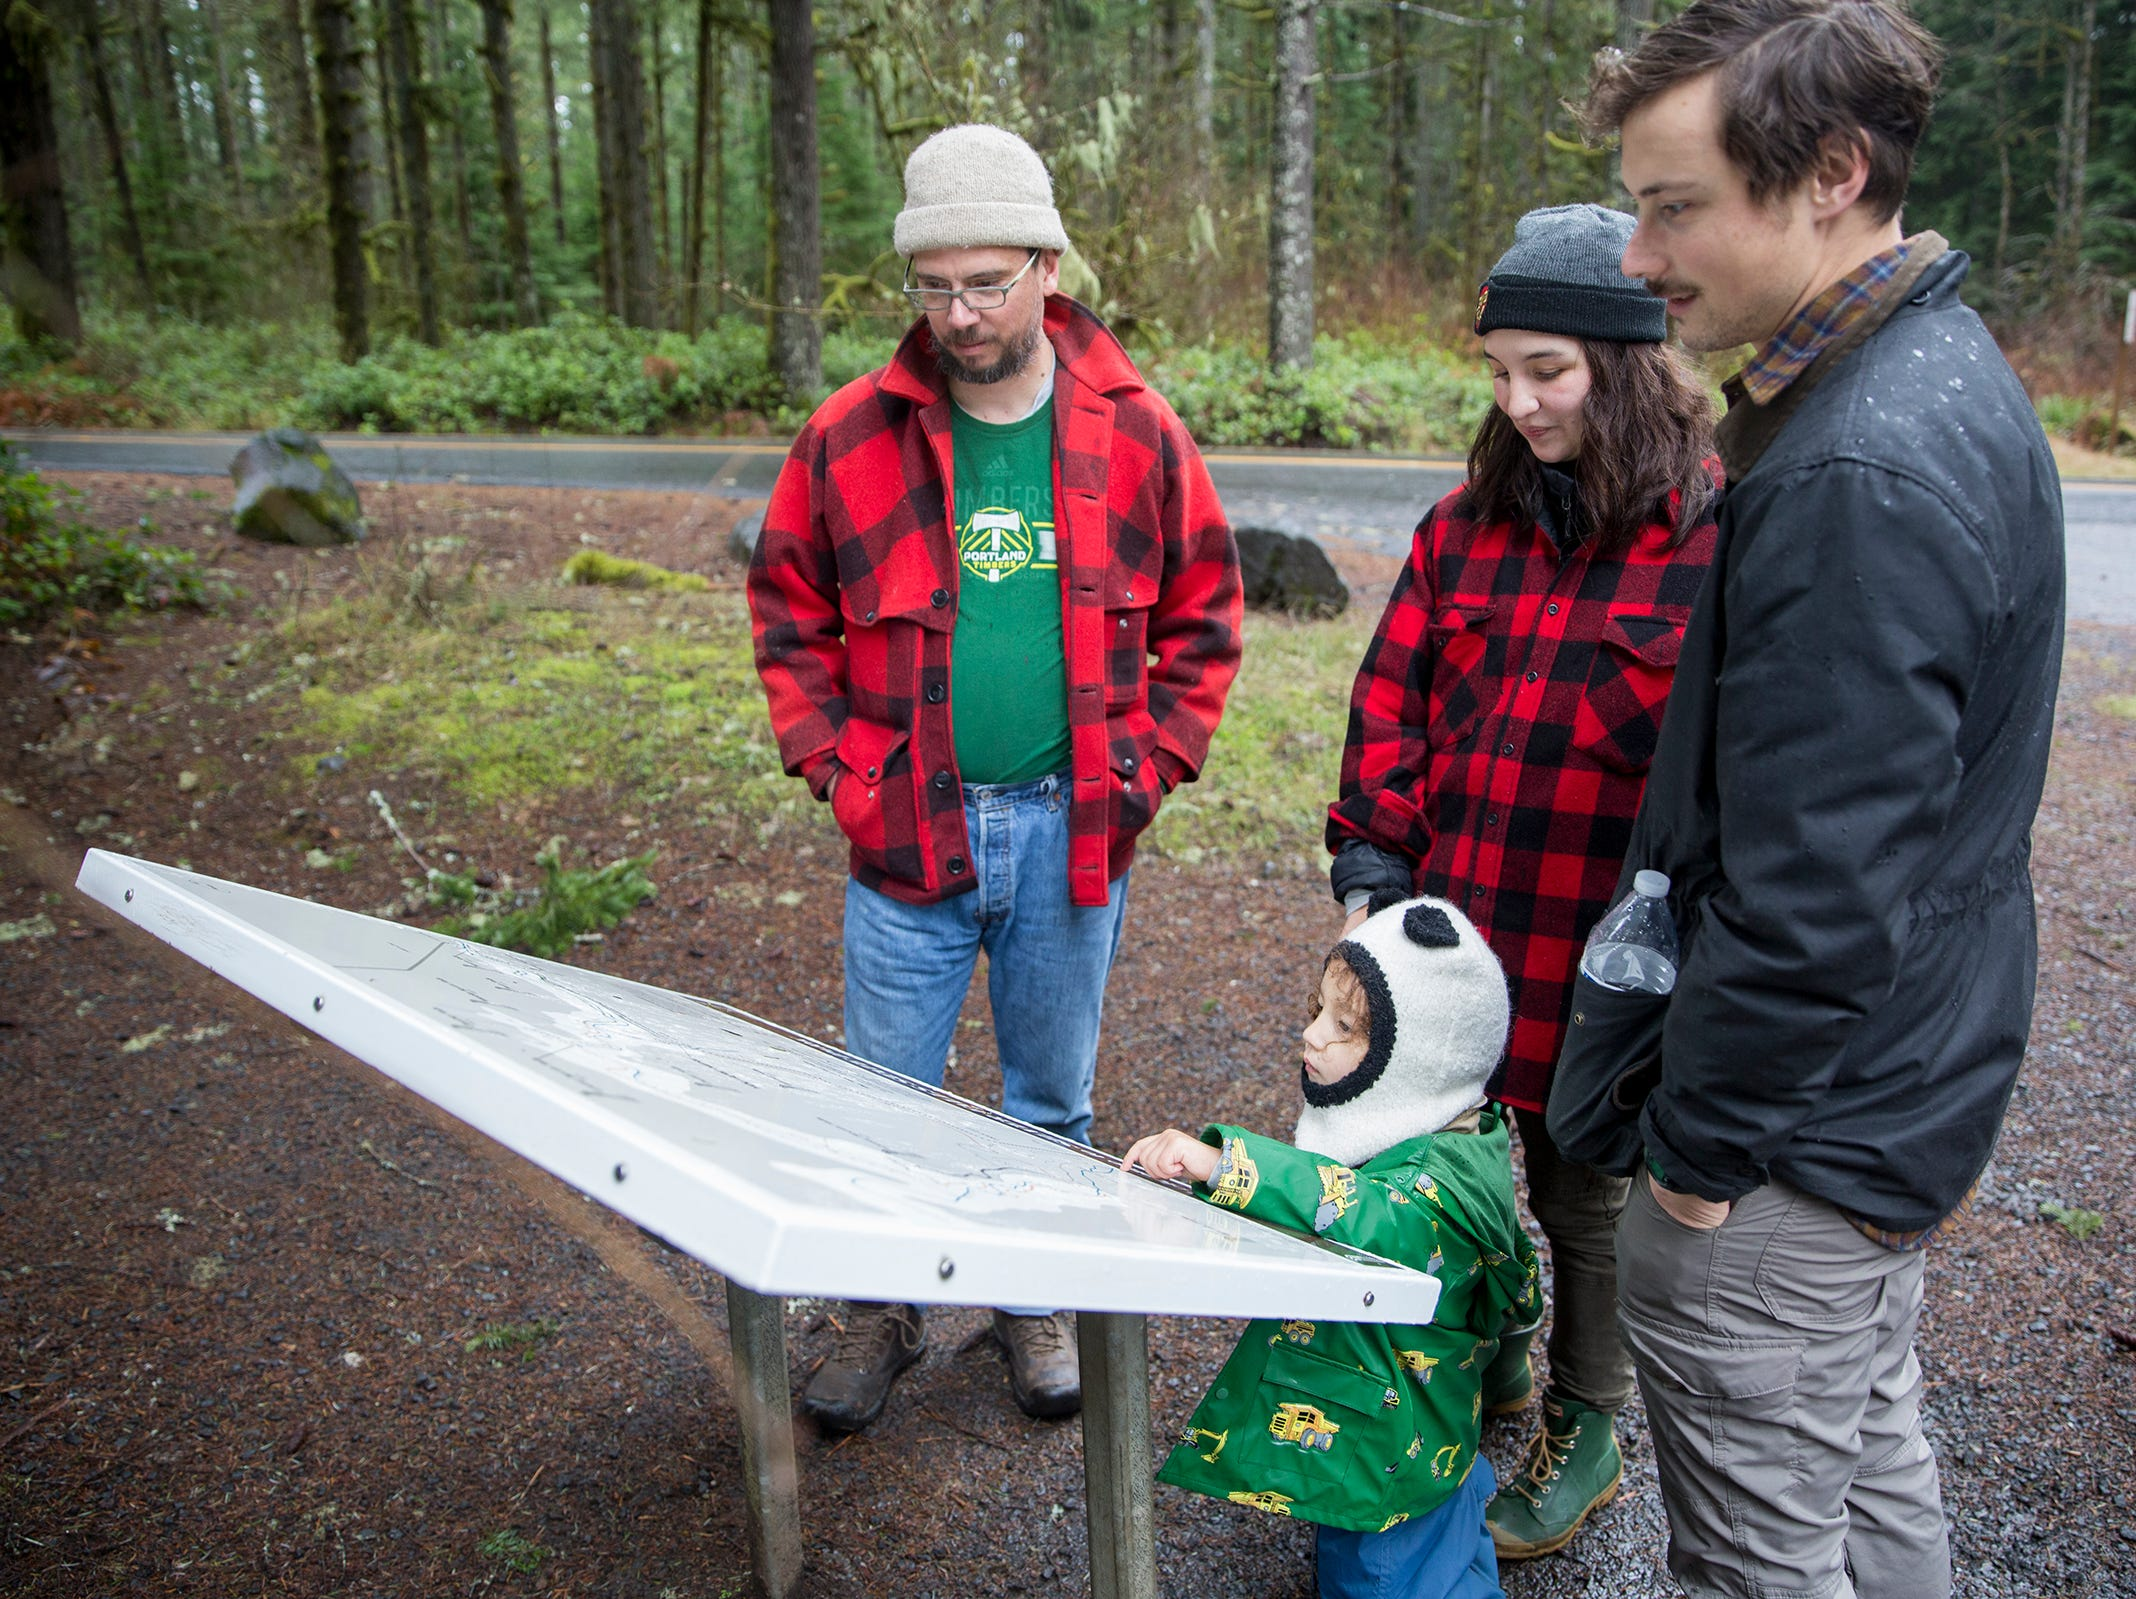 Ynez Basurta, Jeremy Basurto, their three-year-old son Ozzie and Joe Lopez look over the South Silver Falls map at Silver Falls State Park in Sublimity on Wednesday, Dec. 26, 2018. The family said they were working off Christmas cookies.